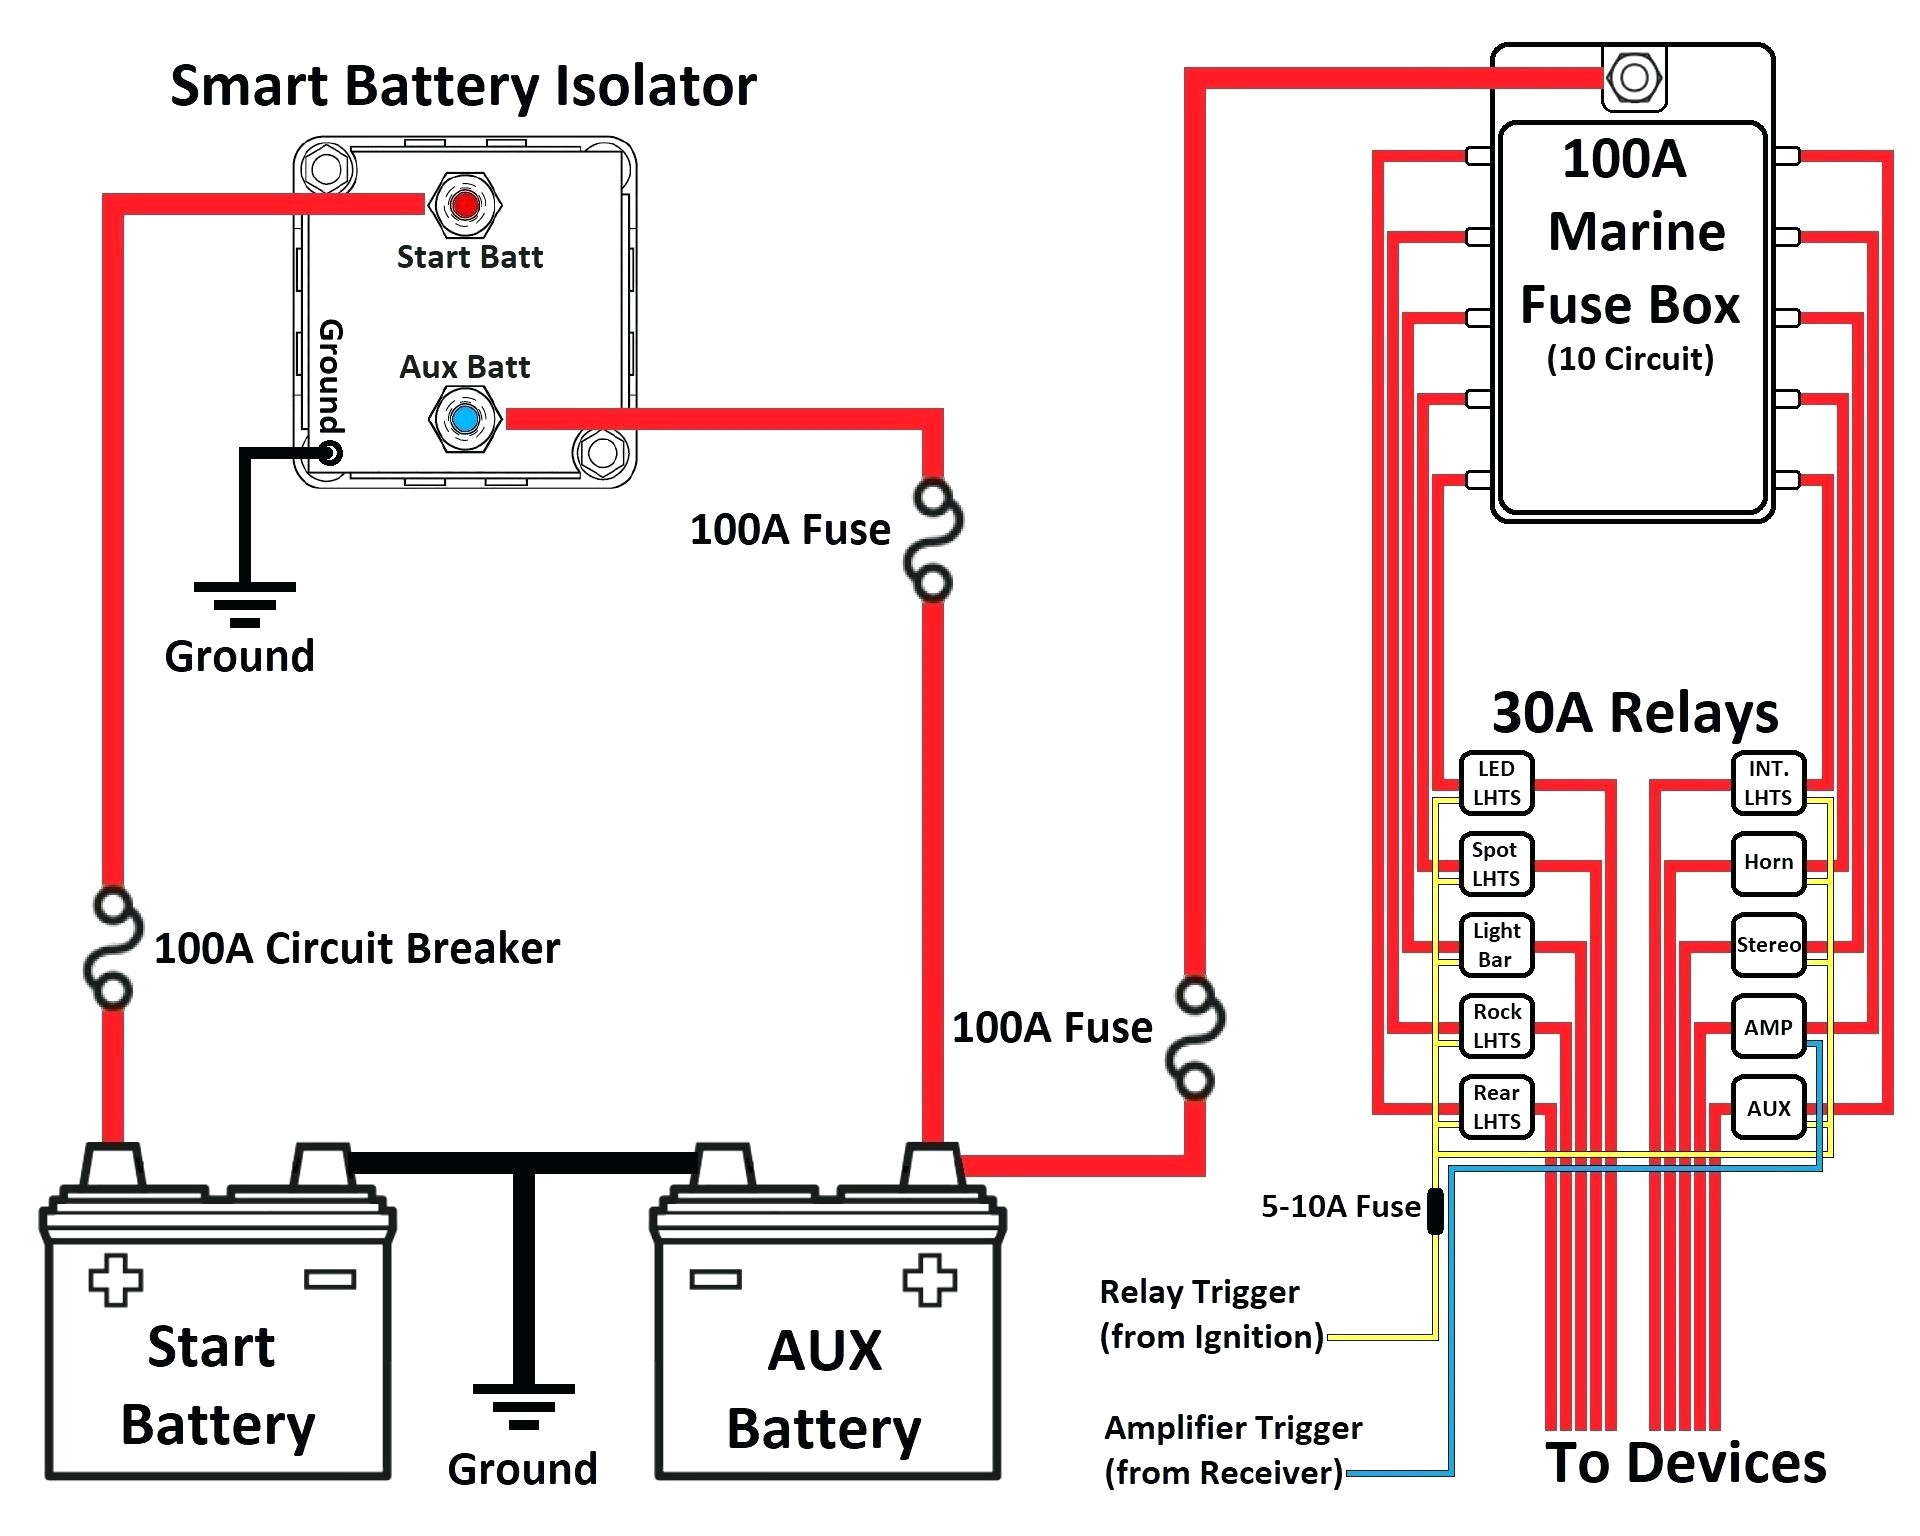 battery isolator 48160 wiring diagram trusted wiring diagram u2022 rh soulmatestyle co